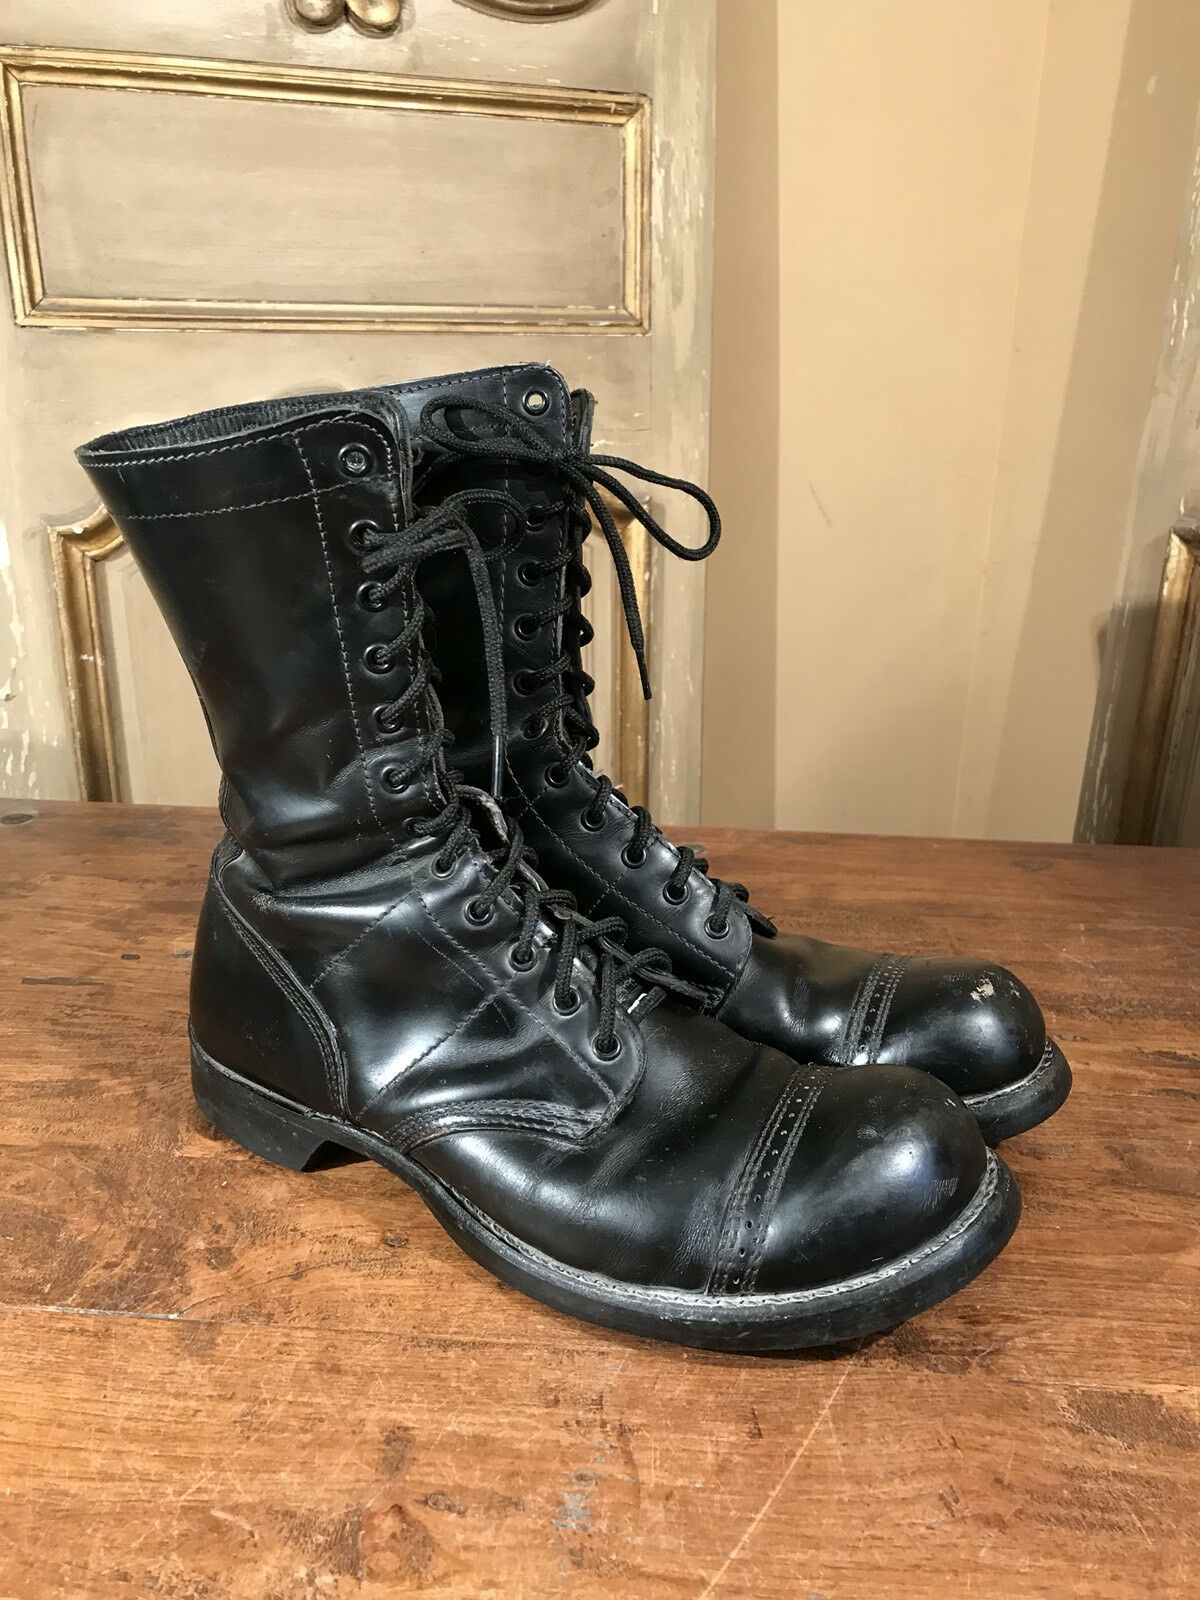 Vietnam Military Army Concord Johnny Depp Boots Mens 10.5 D